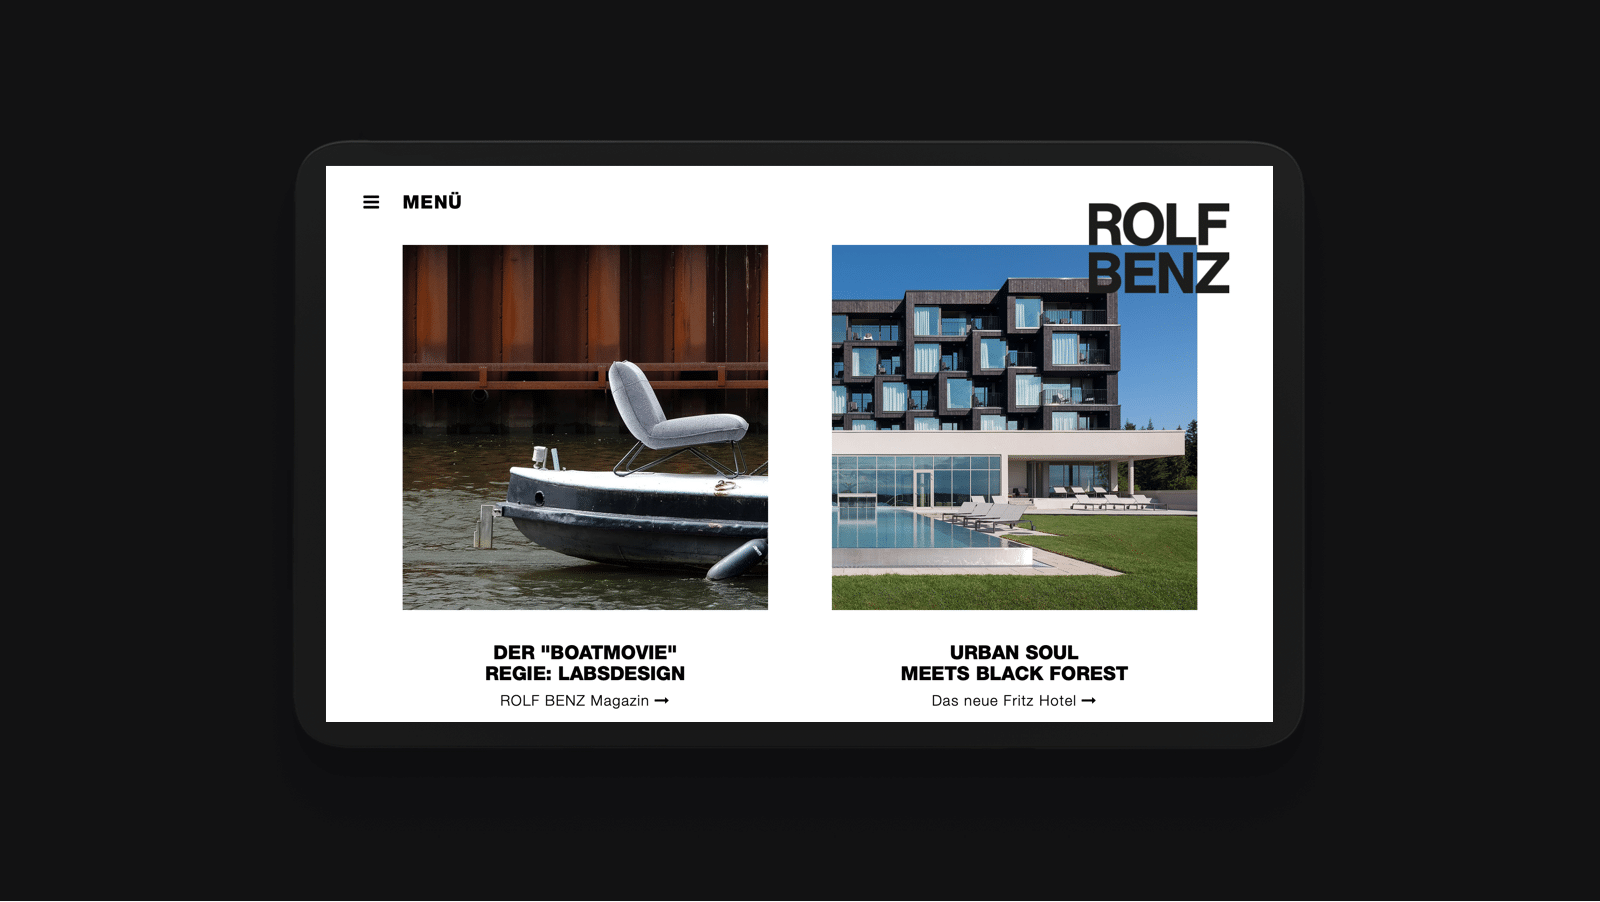 Rolf Benz Mockup as part of the digital brand presence